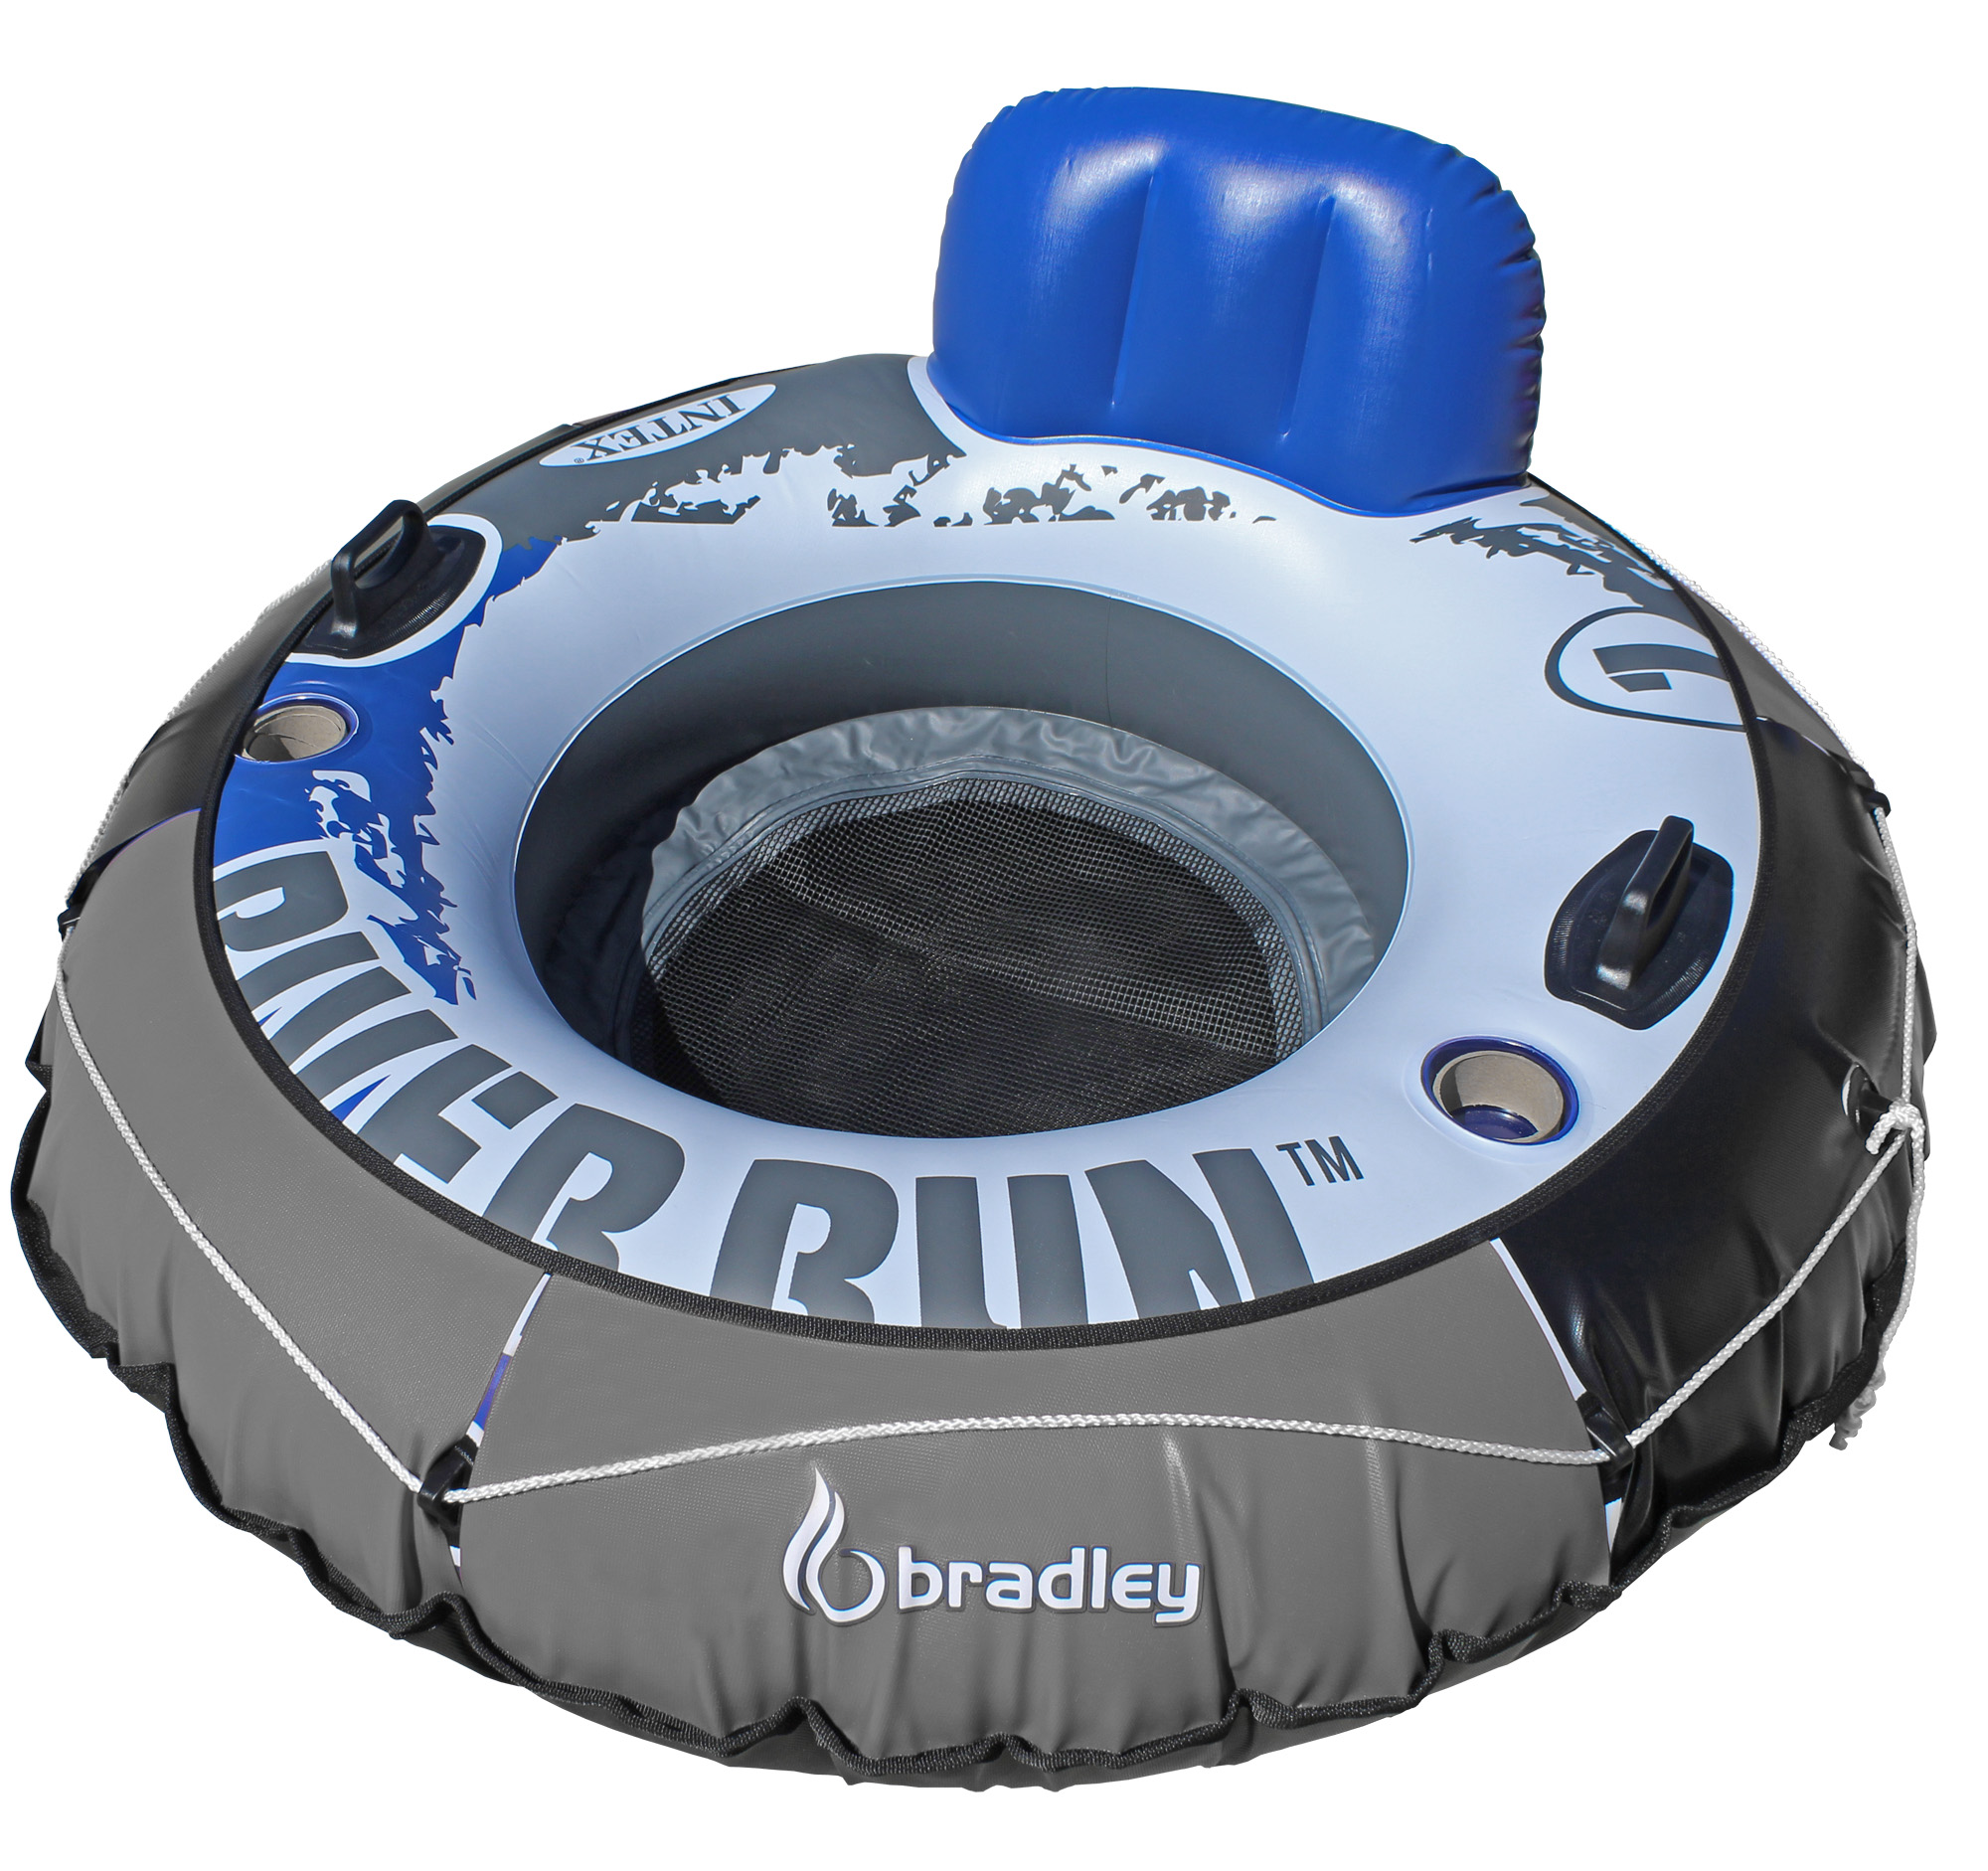 "Heavy Duty River Tube Cover | Compatible with Intex River Run, Bestway Rapid Rider & Most 53"" Inflatable River Tube"